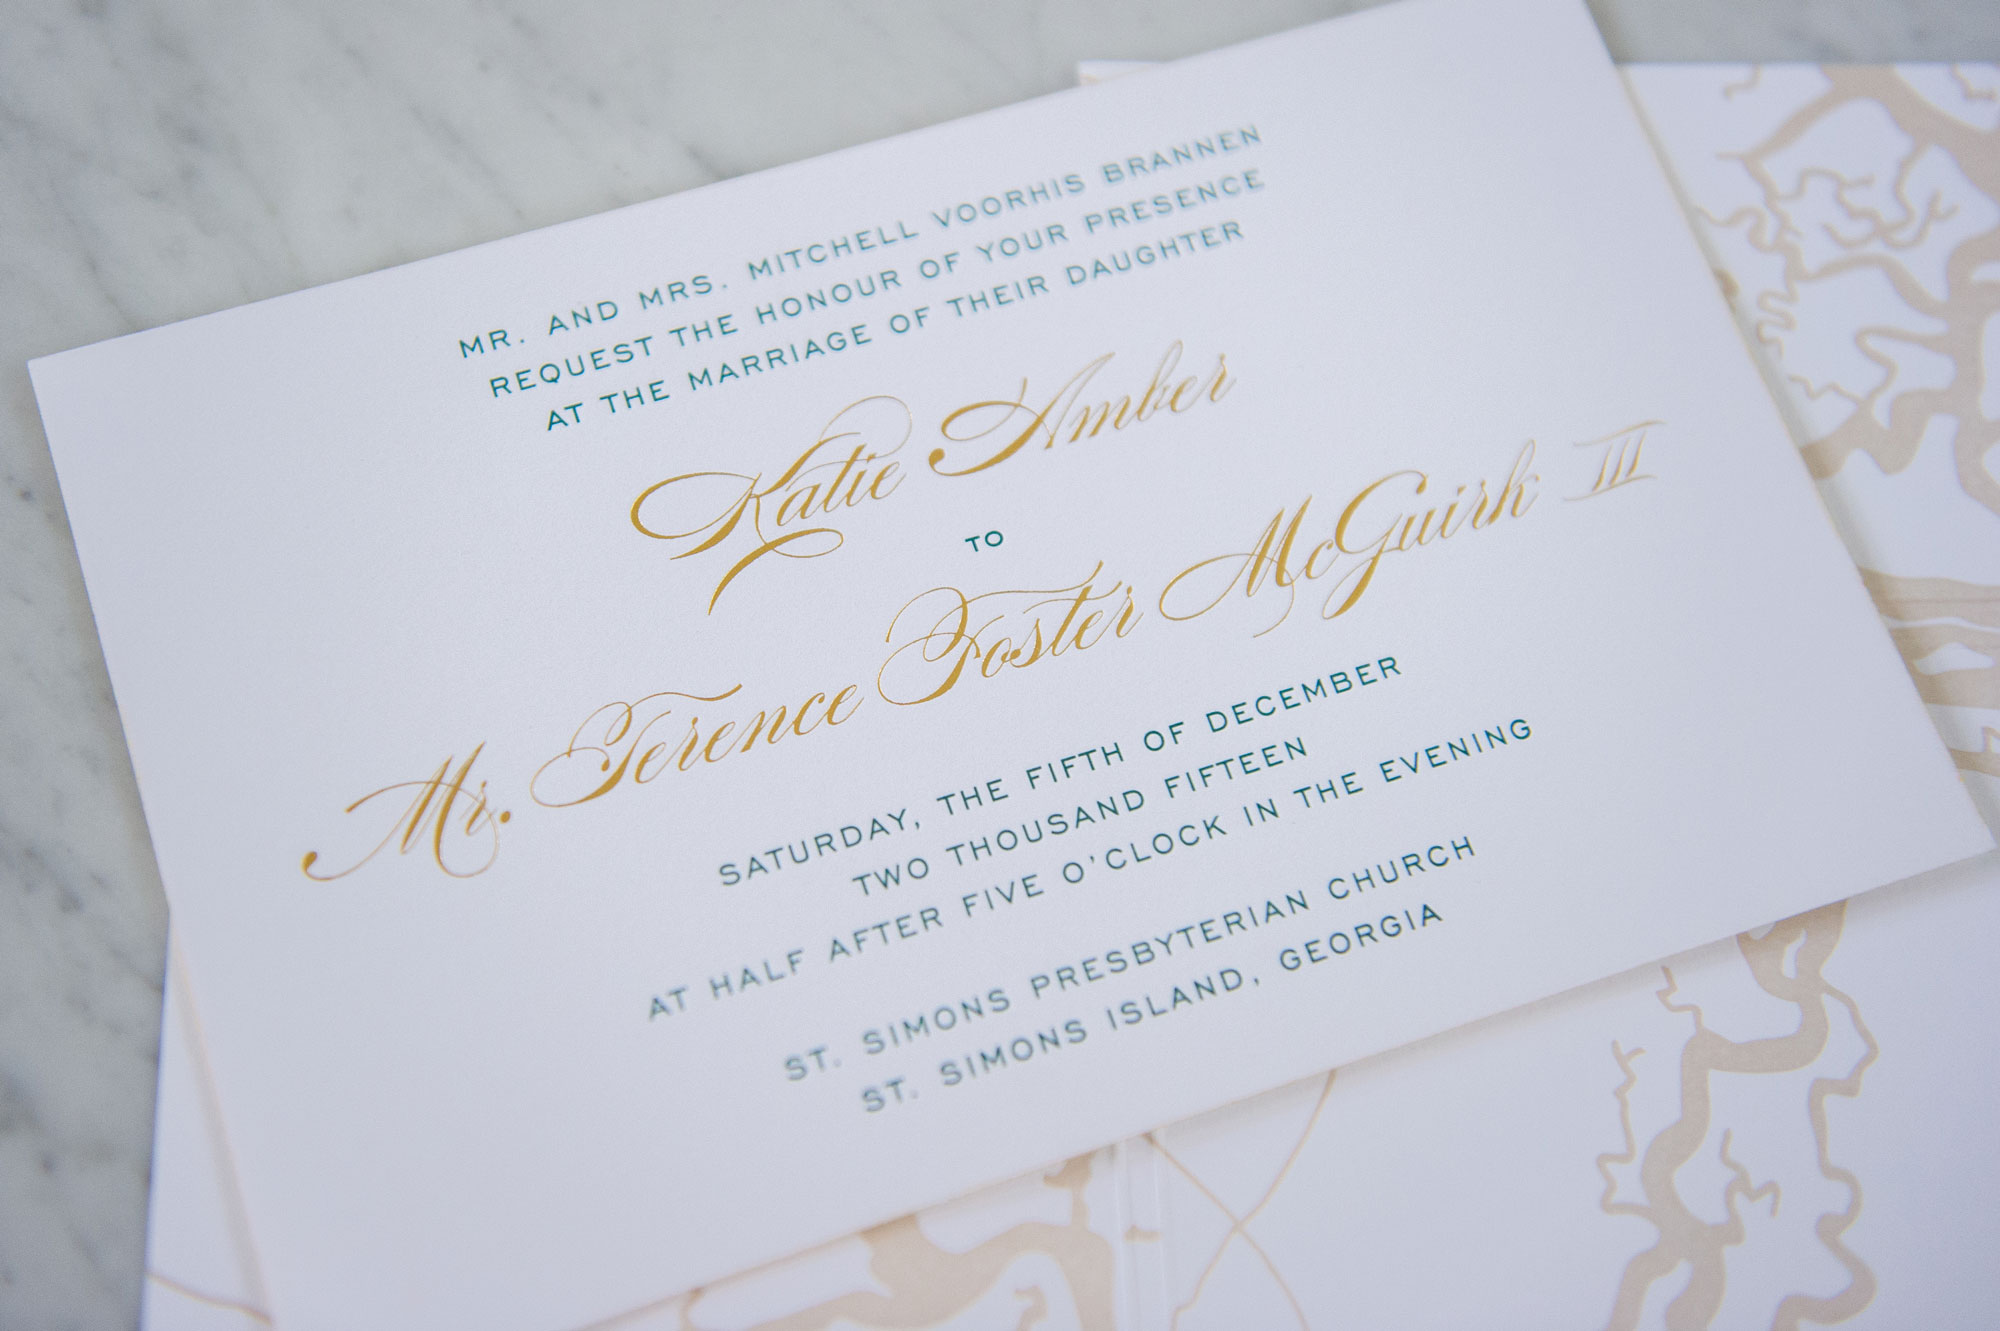 letterpress invitation suite, with green paper and glass-cloth wallpaper. letterpress map. gold foil  with full solid coverage. All displayed on a marble slab.